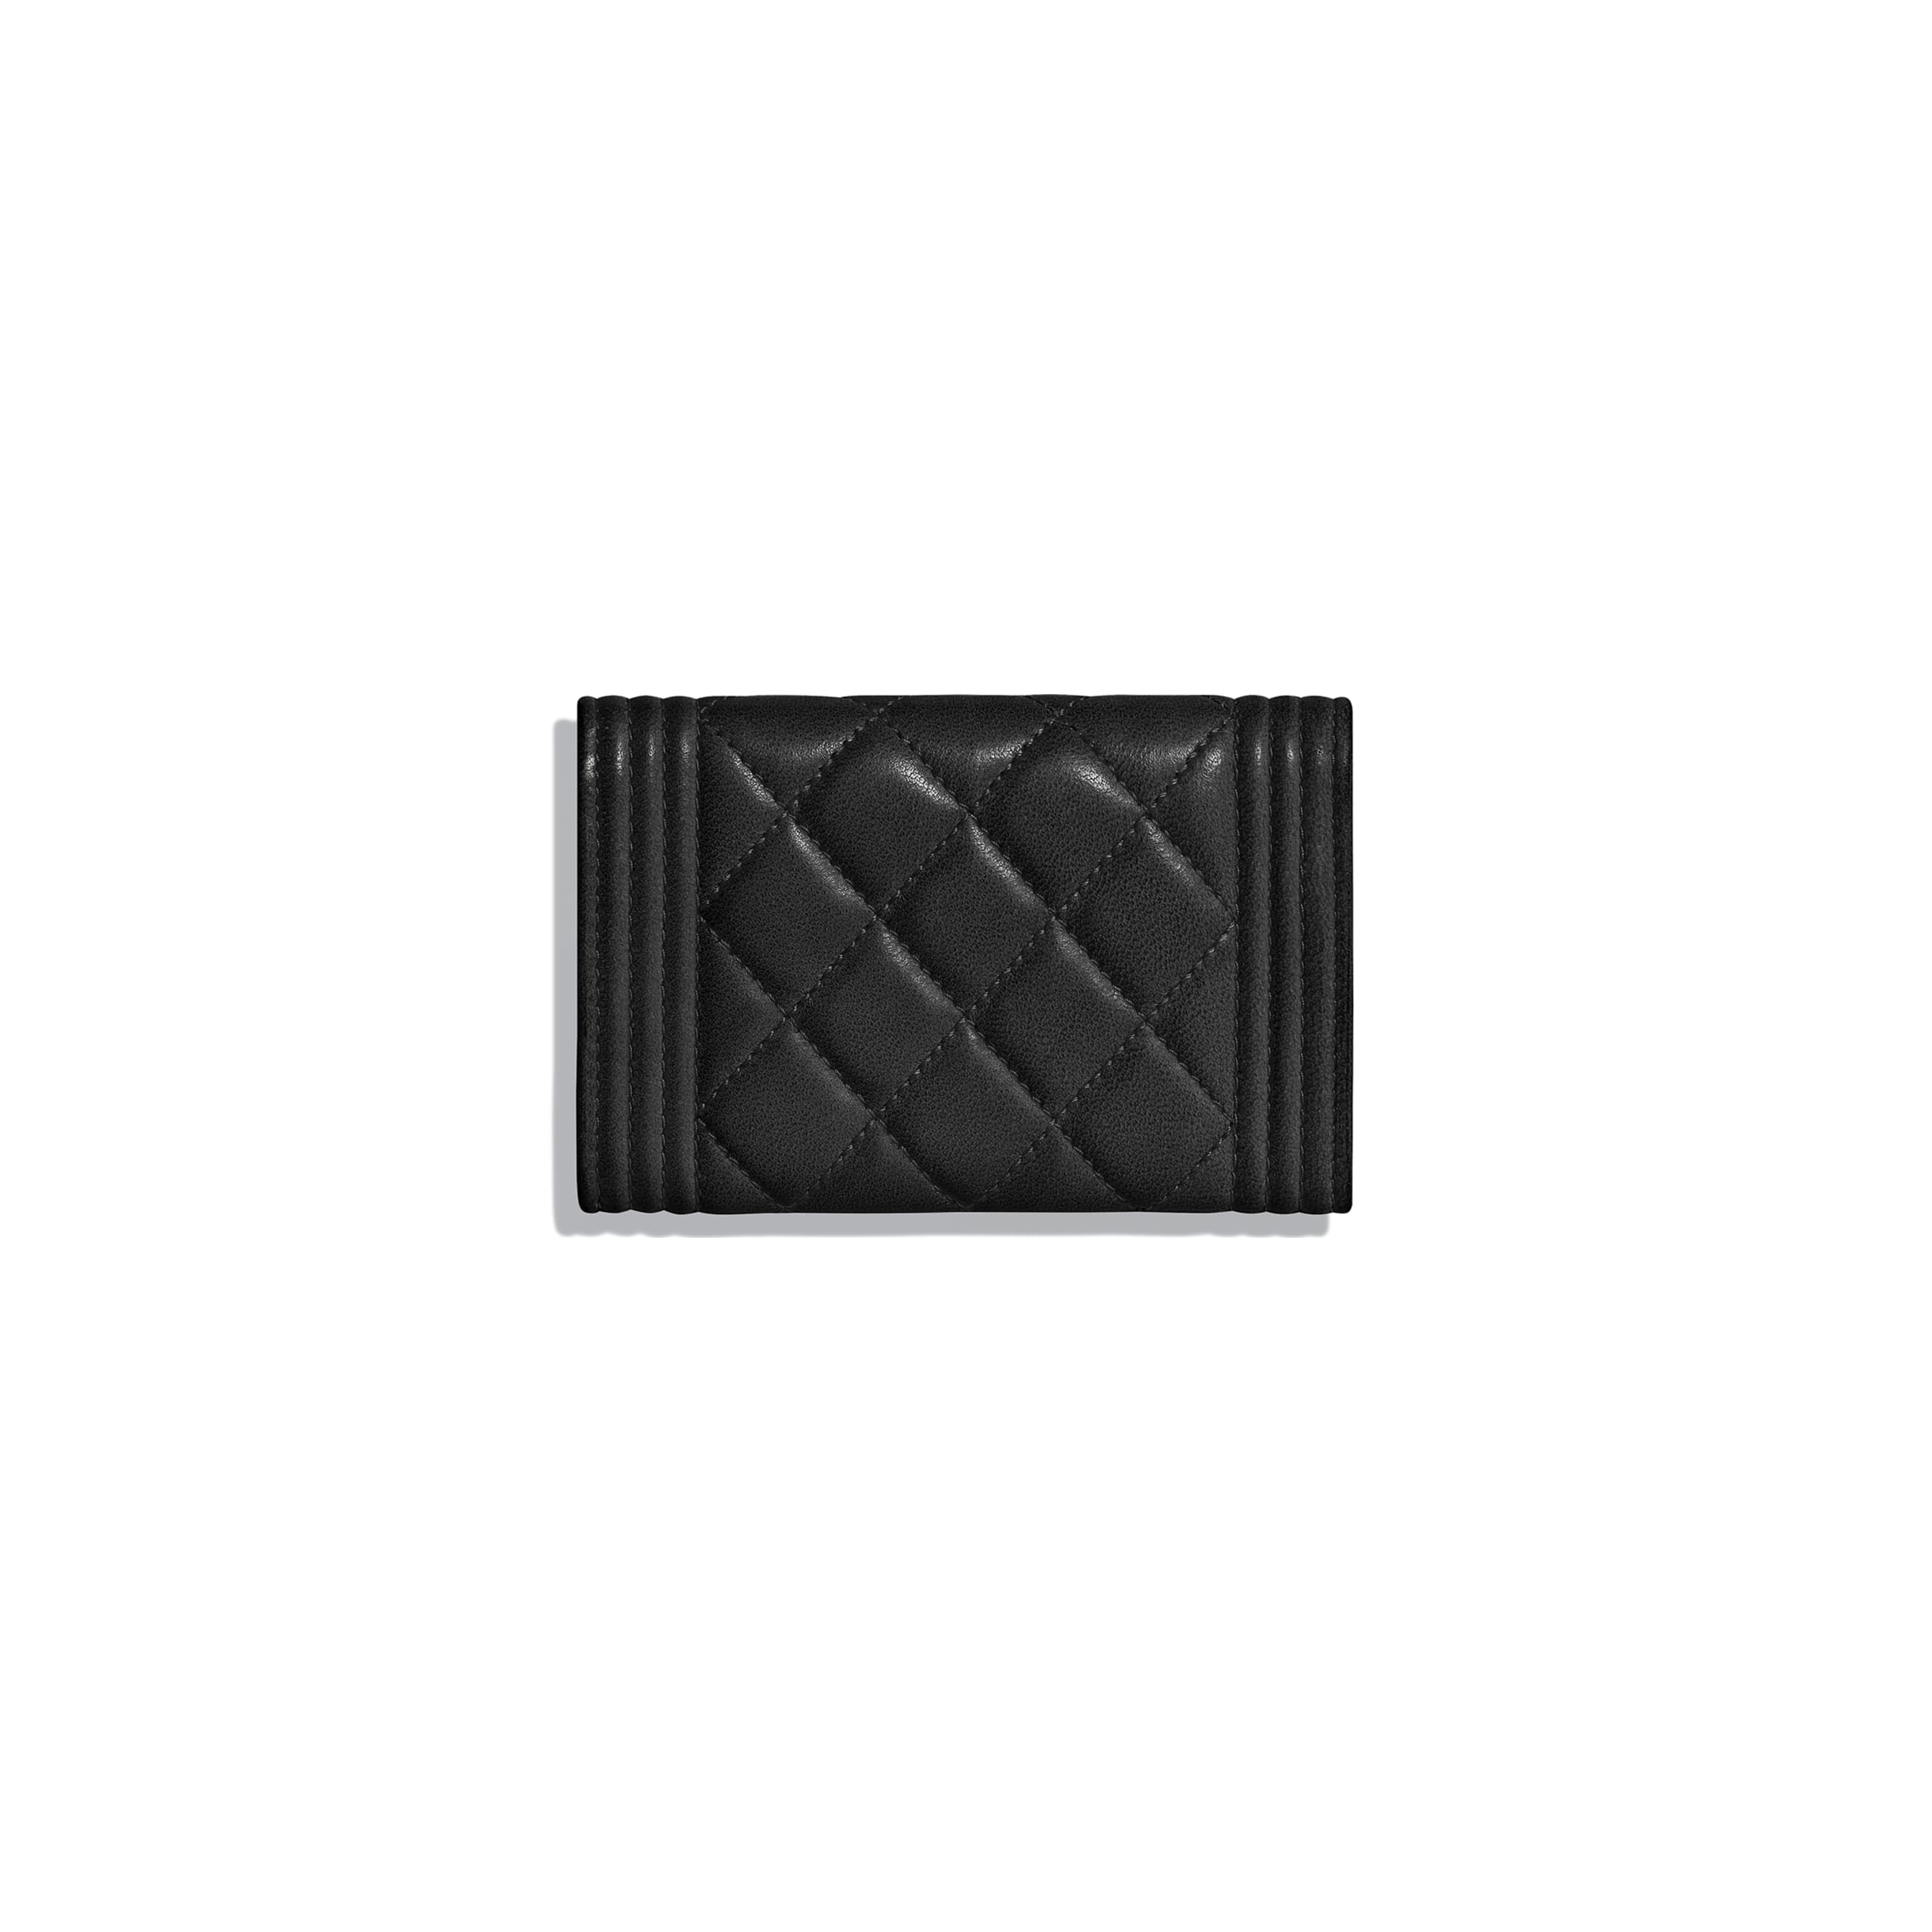 BOY CHANEL Flap Card Holder - Black - Lambskin - CHANEL - Alternative view - see standard sized version